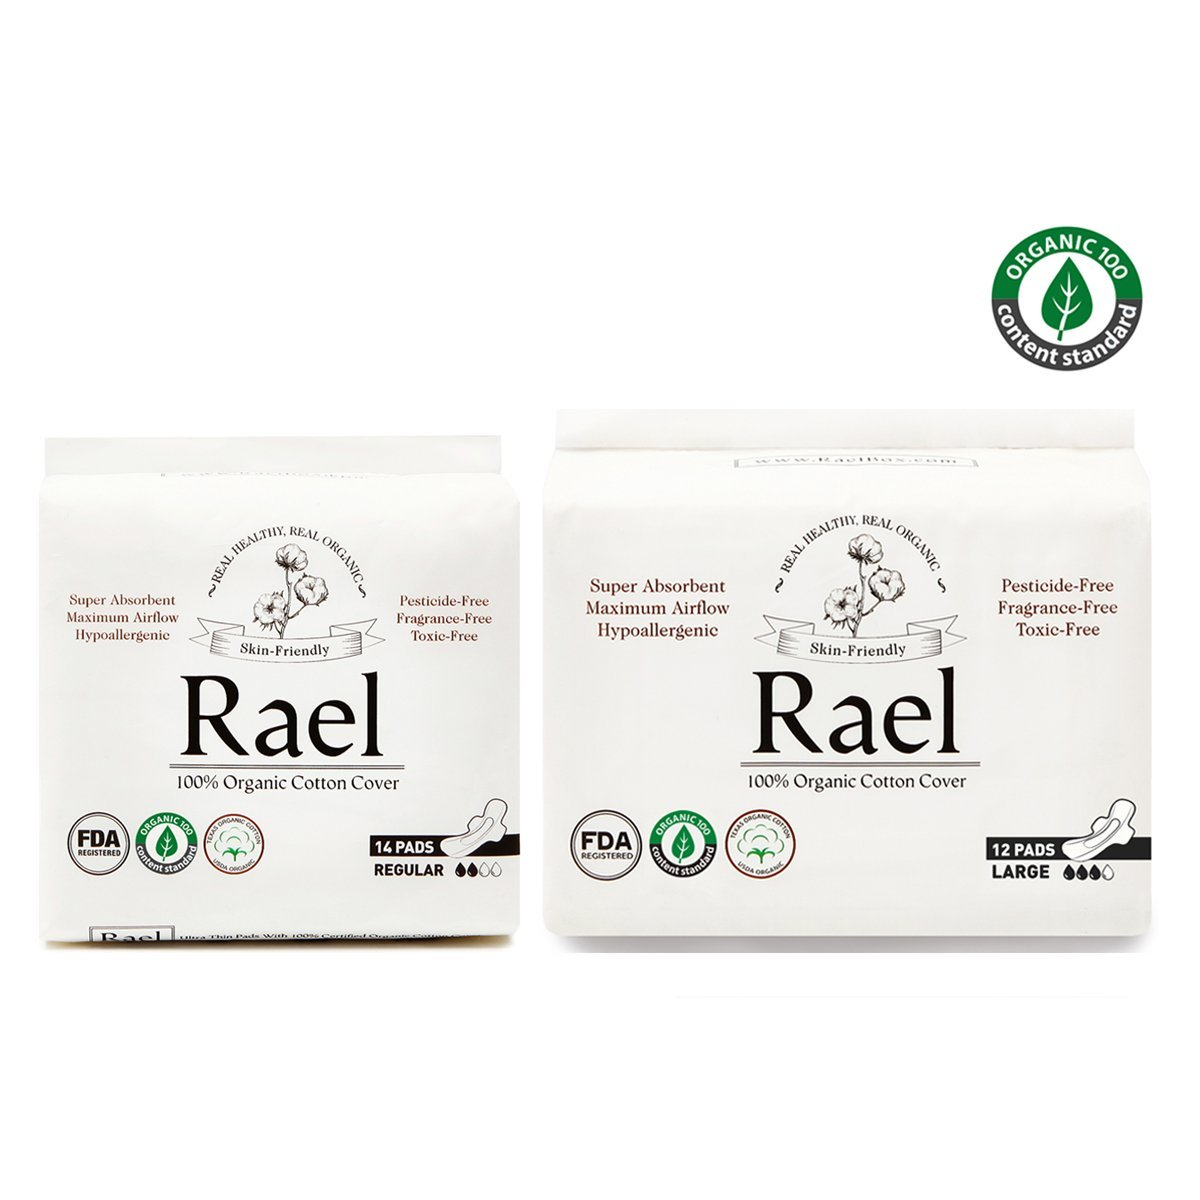 Rael Organic Cotton Sanitary Pads - Certified Organic Cotton Regular Pads 1 Pack and Large Pads 1 Pack by Rael Variety Pack(2 Packs/26 Total)